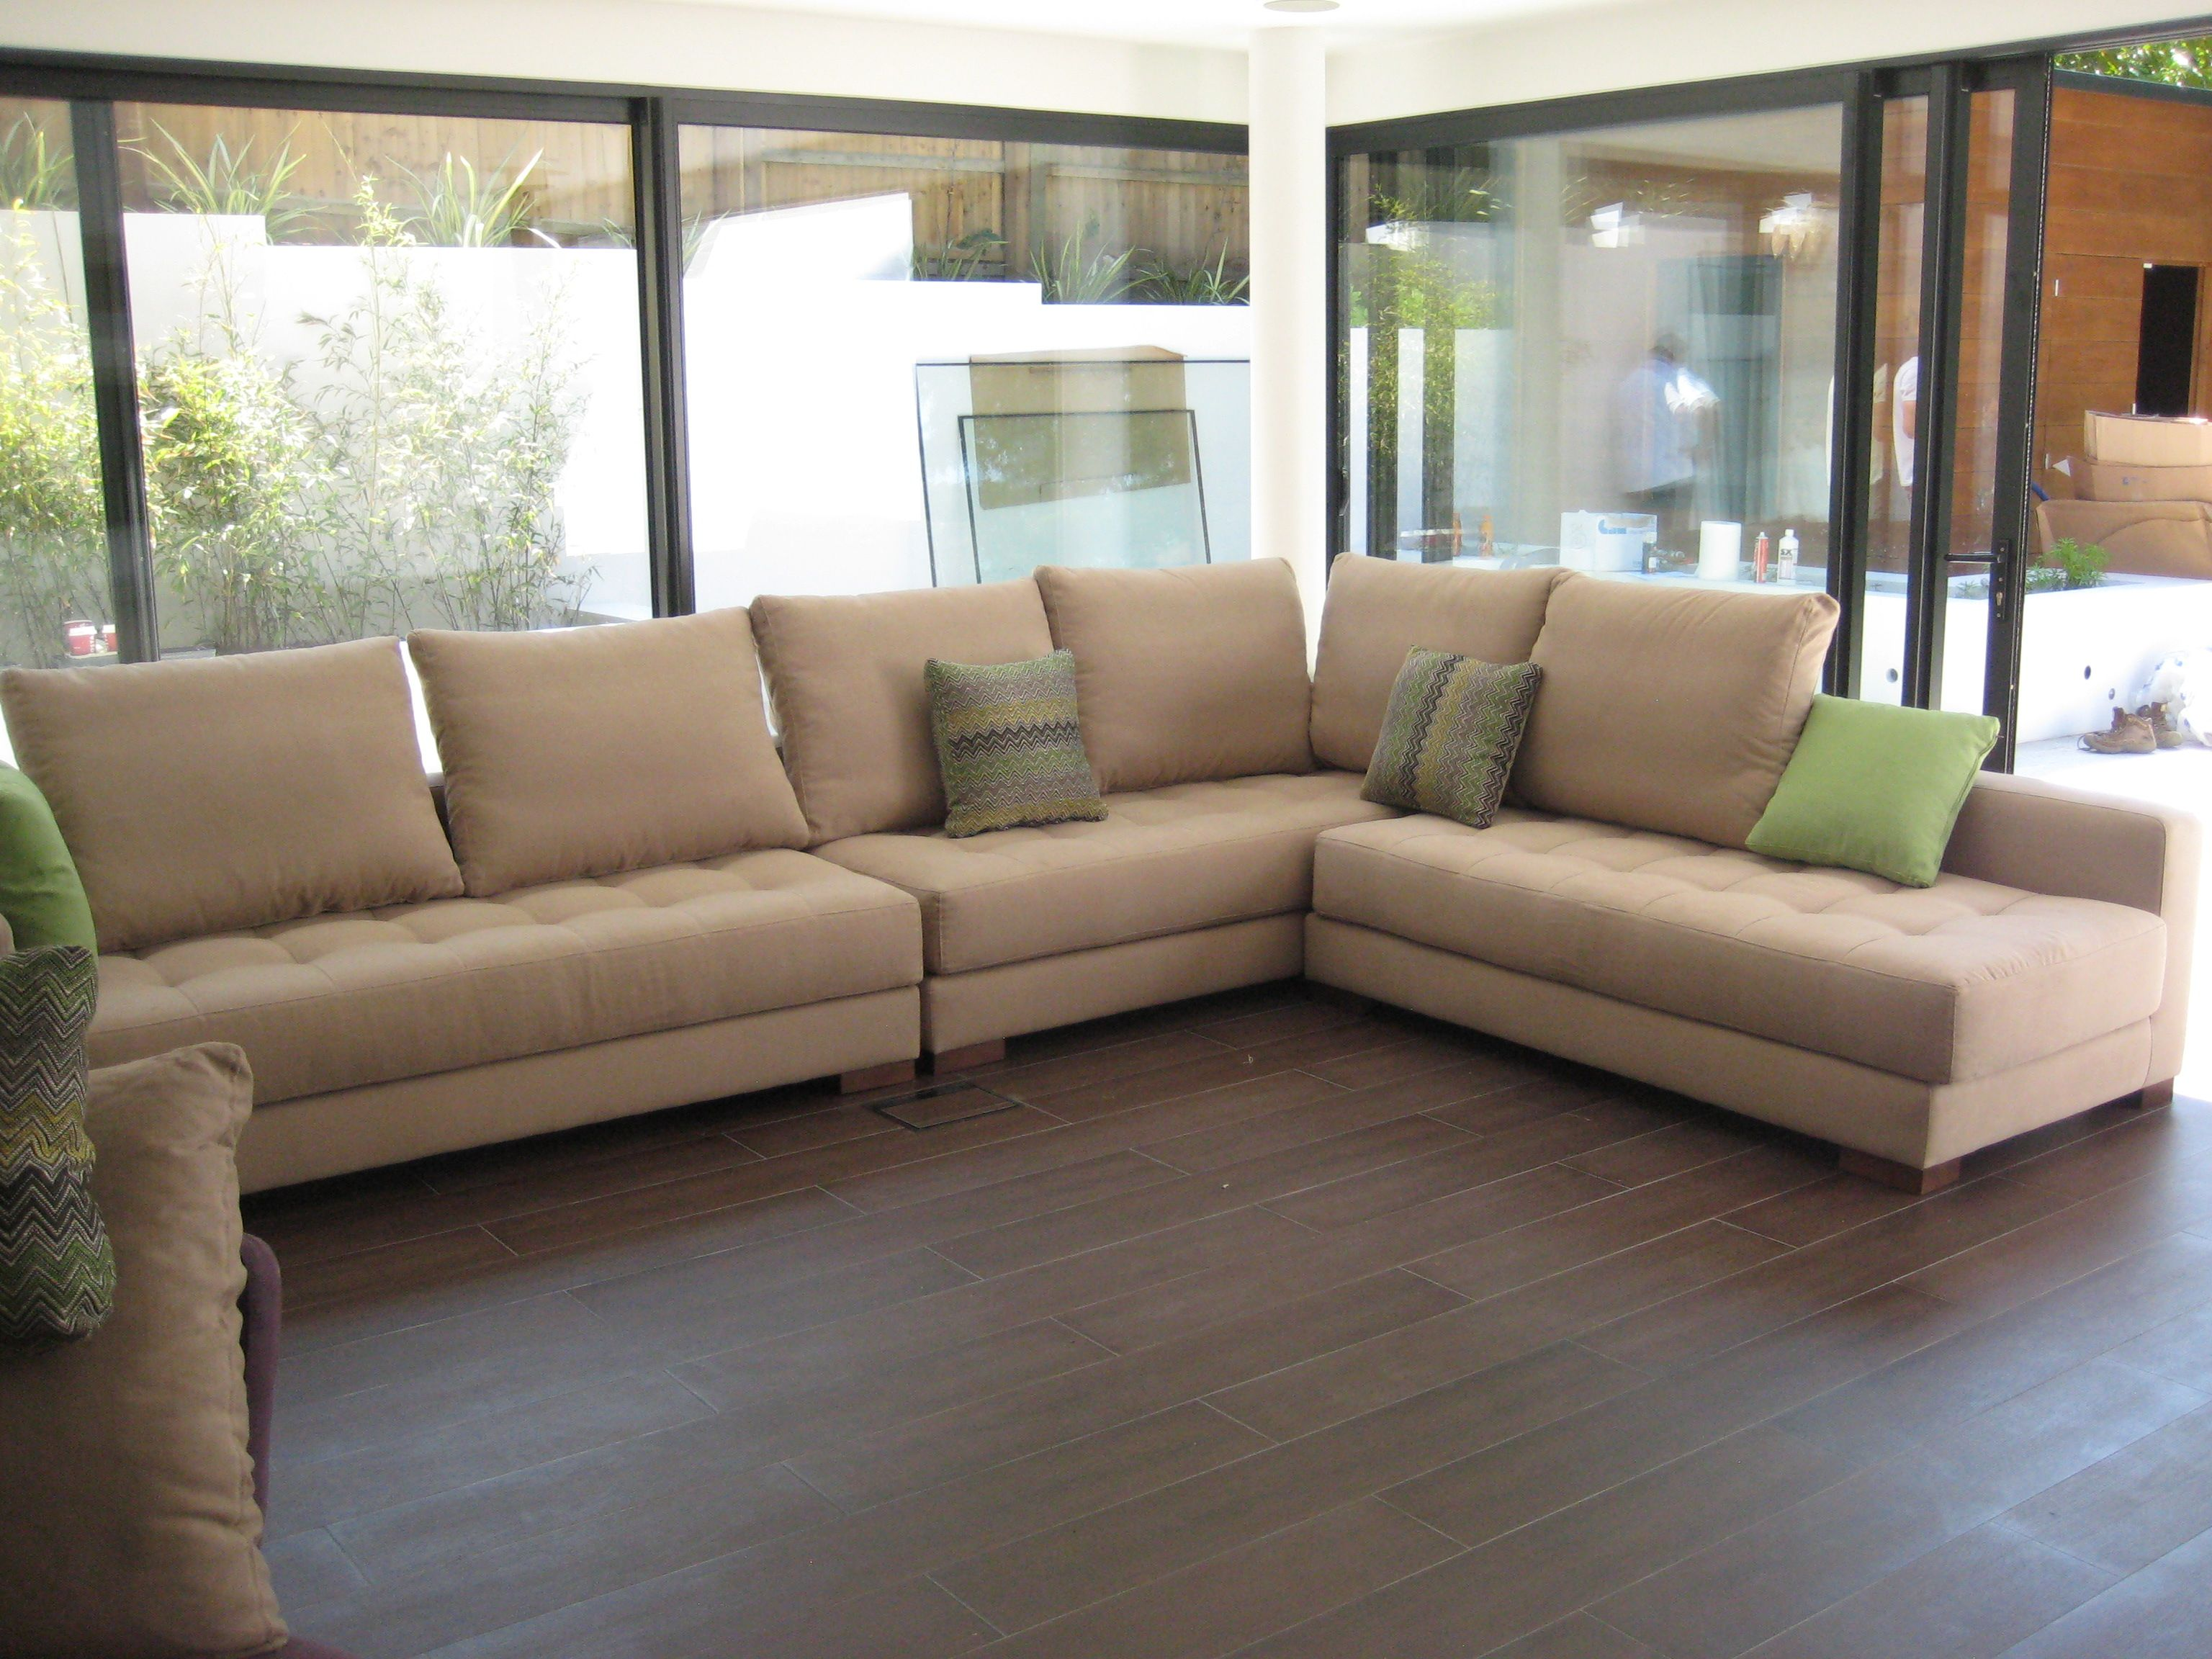 used sac tag full with love sofas size sactional reviews deep couches sectional couch oversized seated articles large sofa lovesac